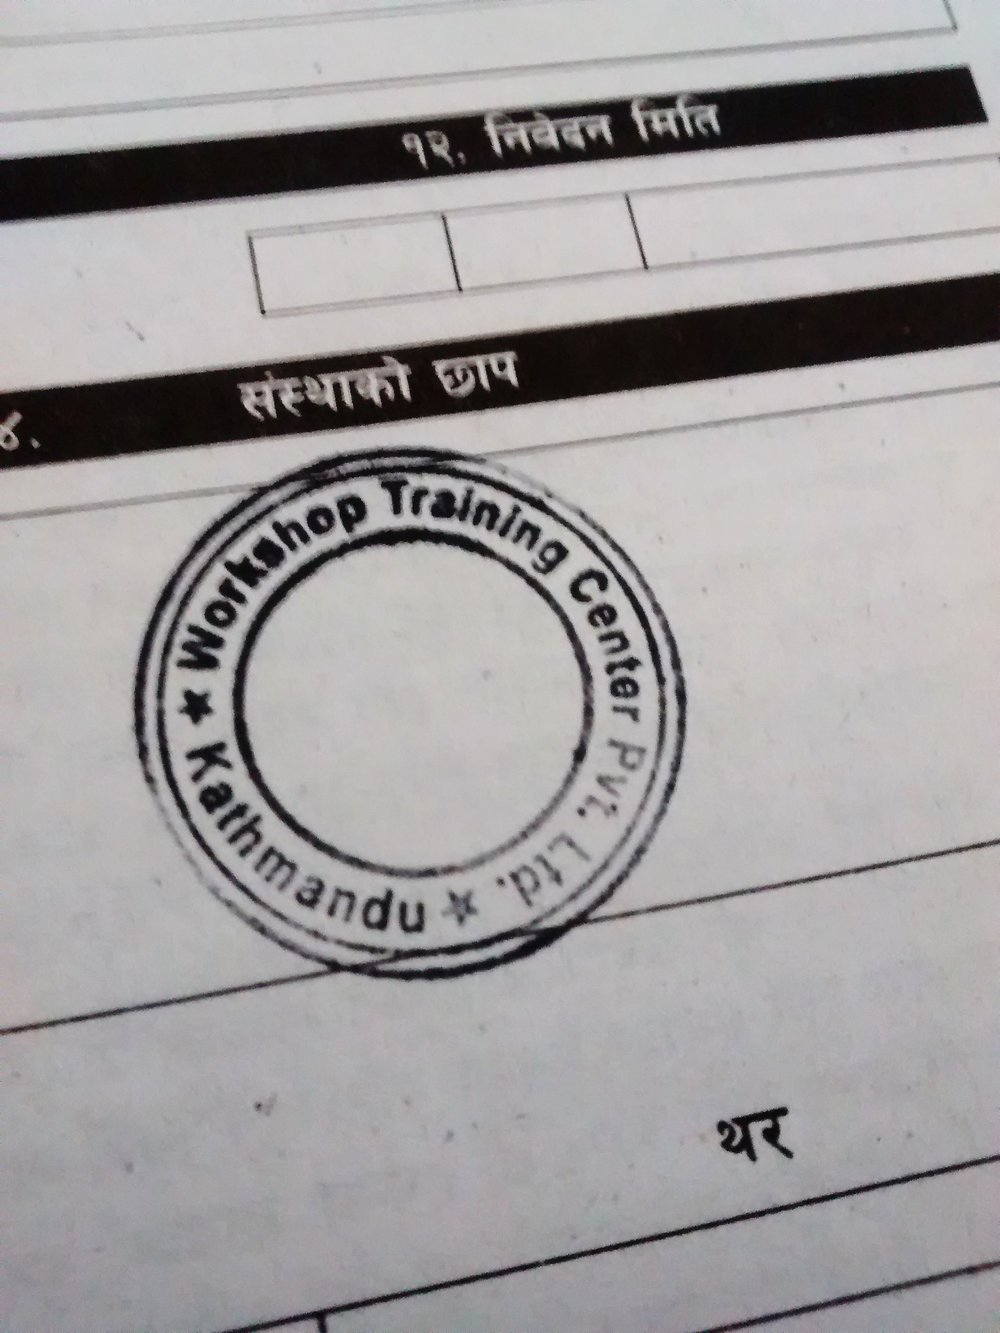 Stamps are a big deal in Nepal, and so is getting our own now that we are a registered training center!